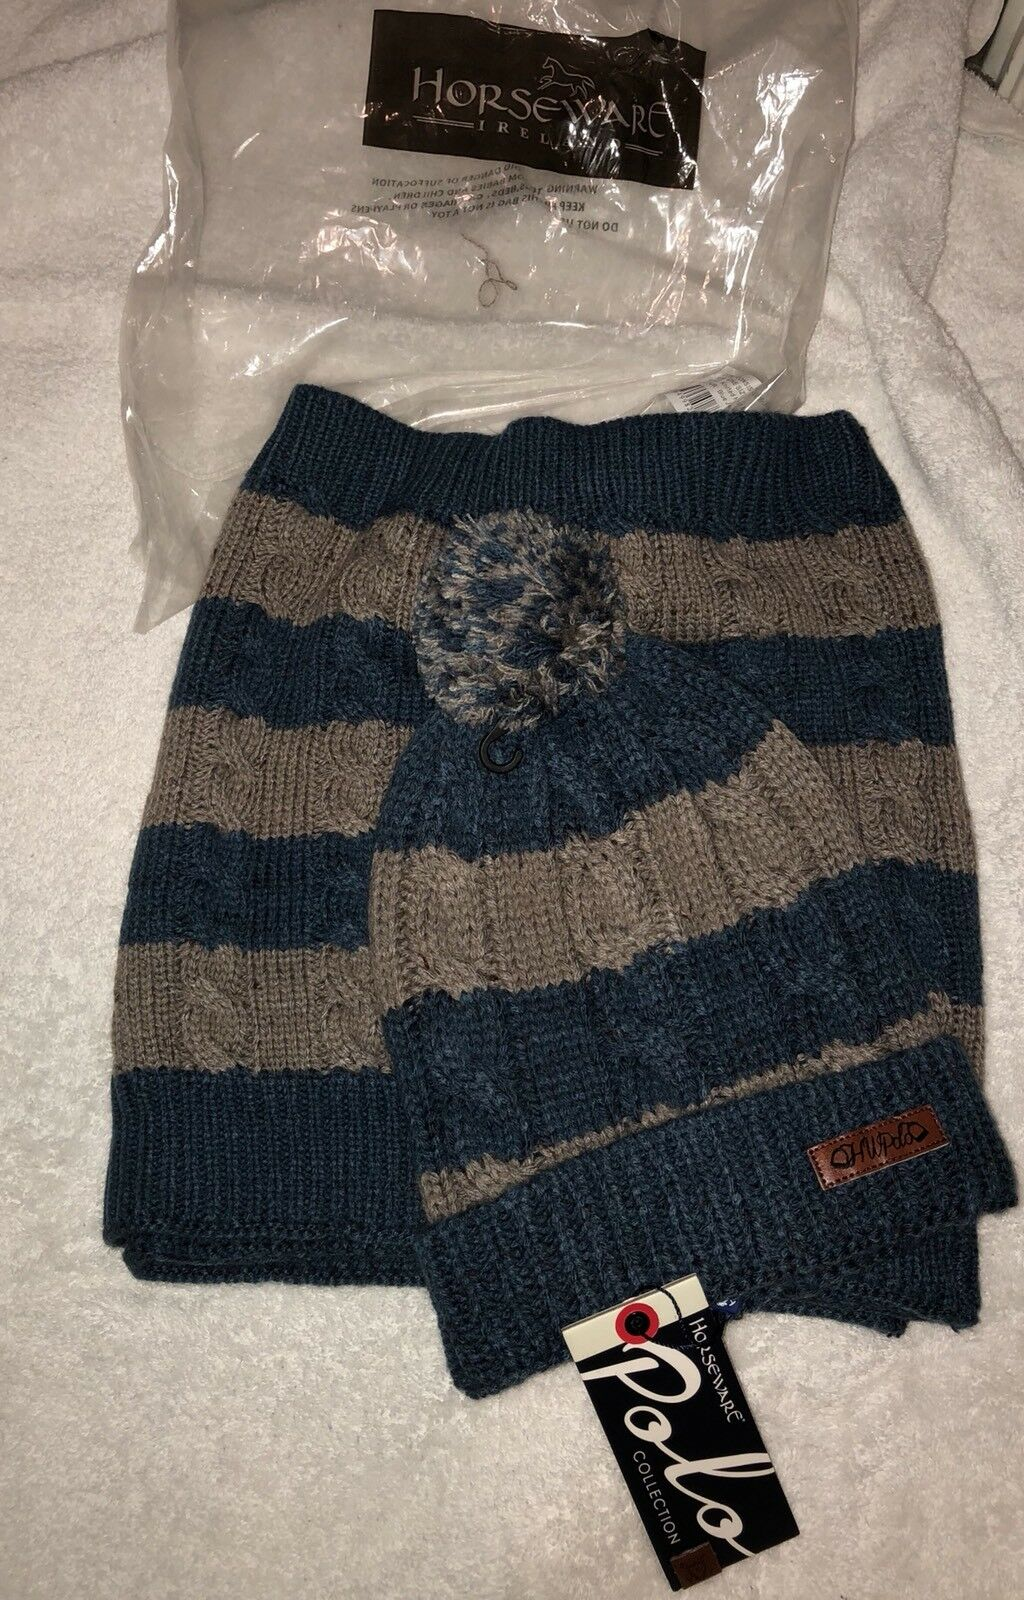 Horseware Ireland Knitted Hat & Scarf bluee Jean  NWT  outlet online